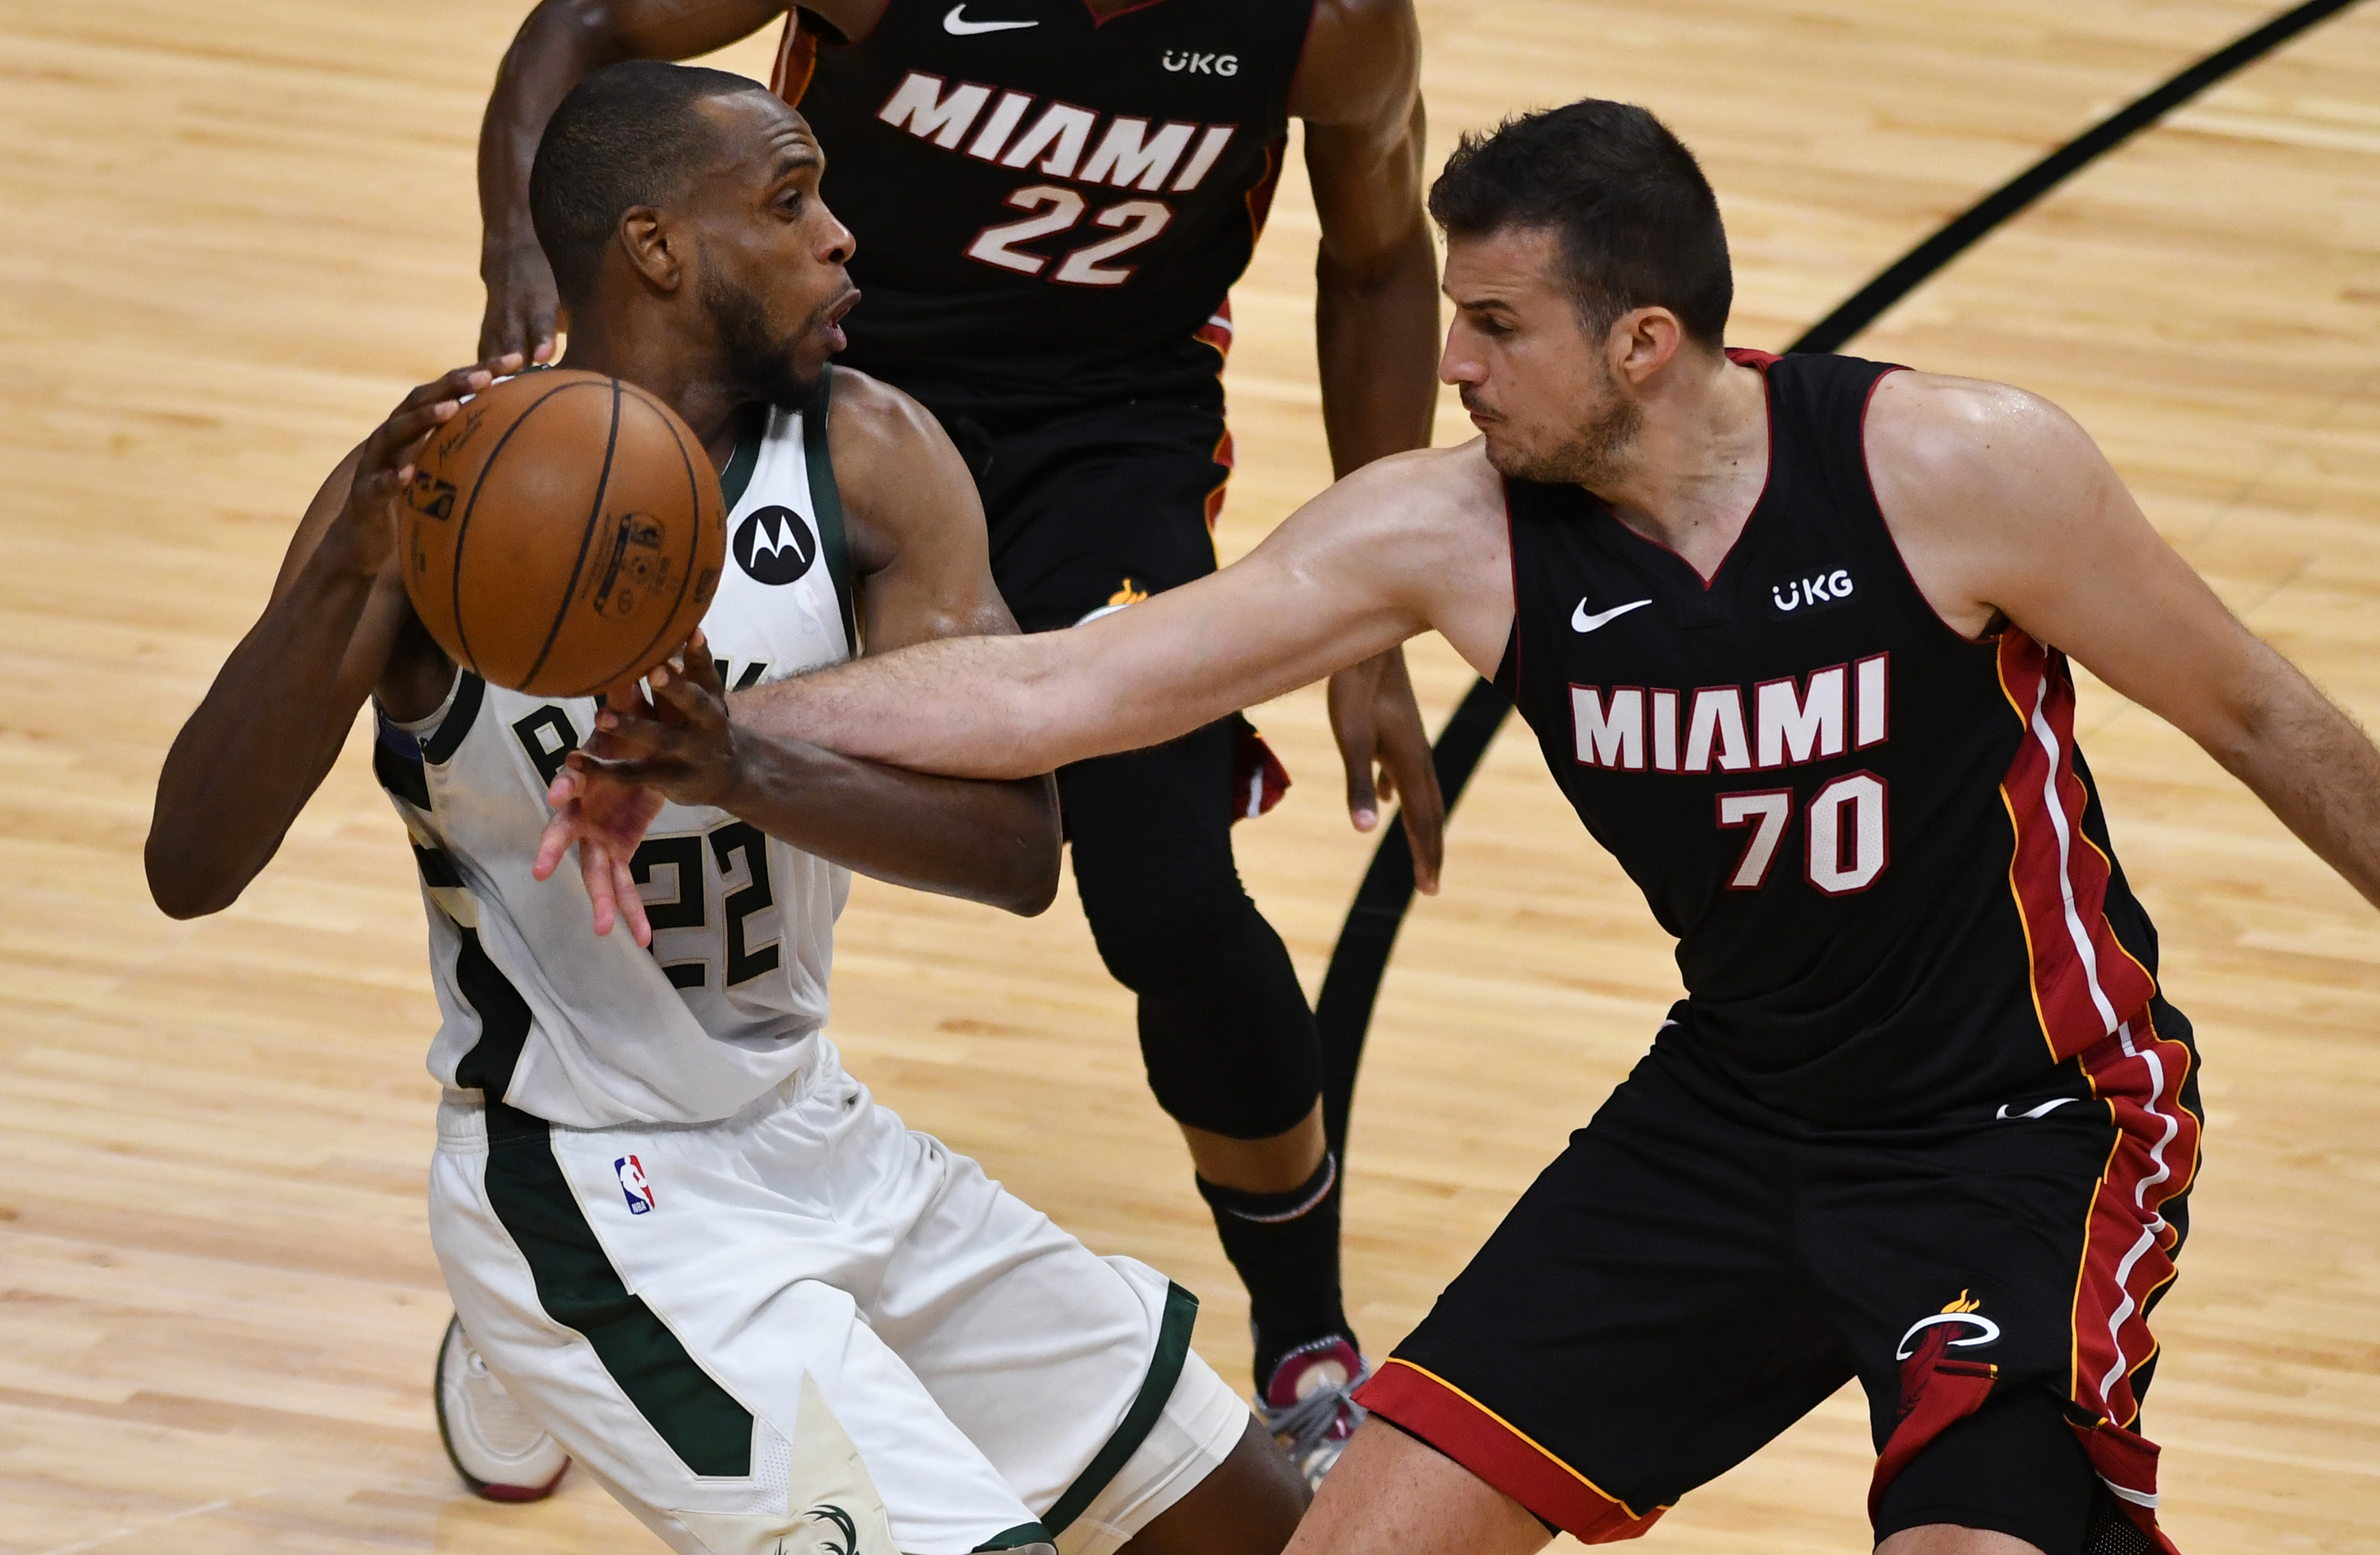 May 27, 2021; Miami, Florida, USA; Miami Heat forward Nemanja Bjelica (70) tips the ball loose from Milwaukee Bucks forward Khris Middleton (22) in the second half during game three in the first round of the 2021 NBA Playoffs at American Airlines Arena. Mandatory Credit: Jim Rassol-USA TODAY Sports